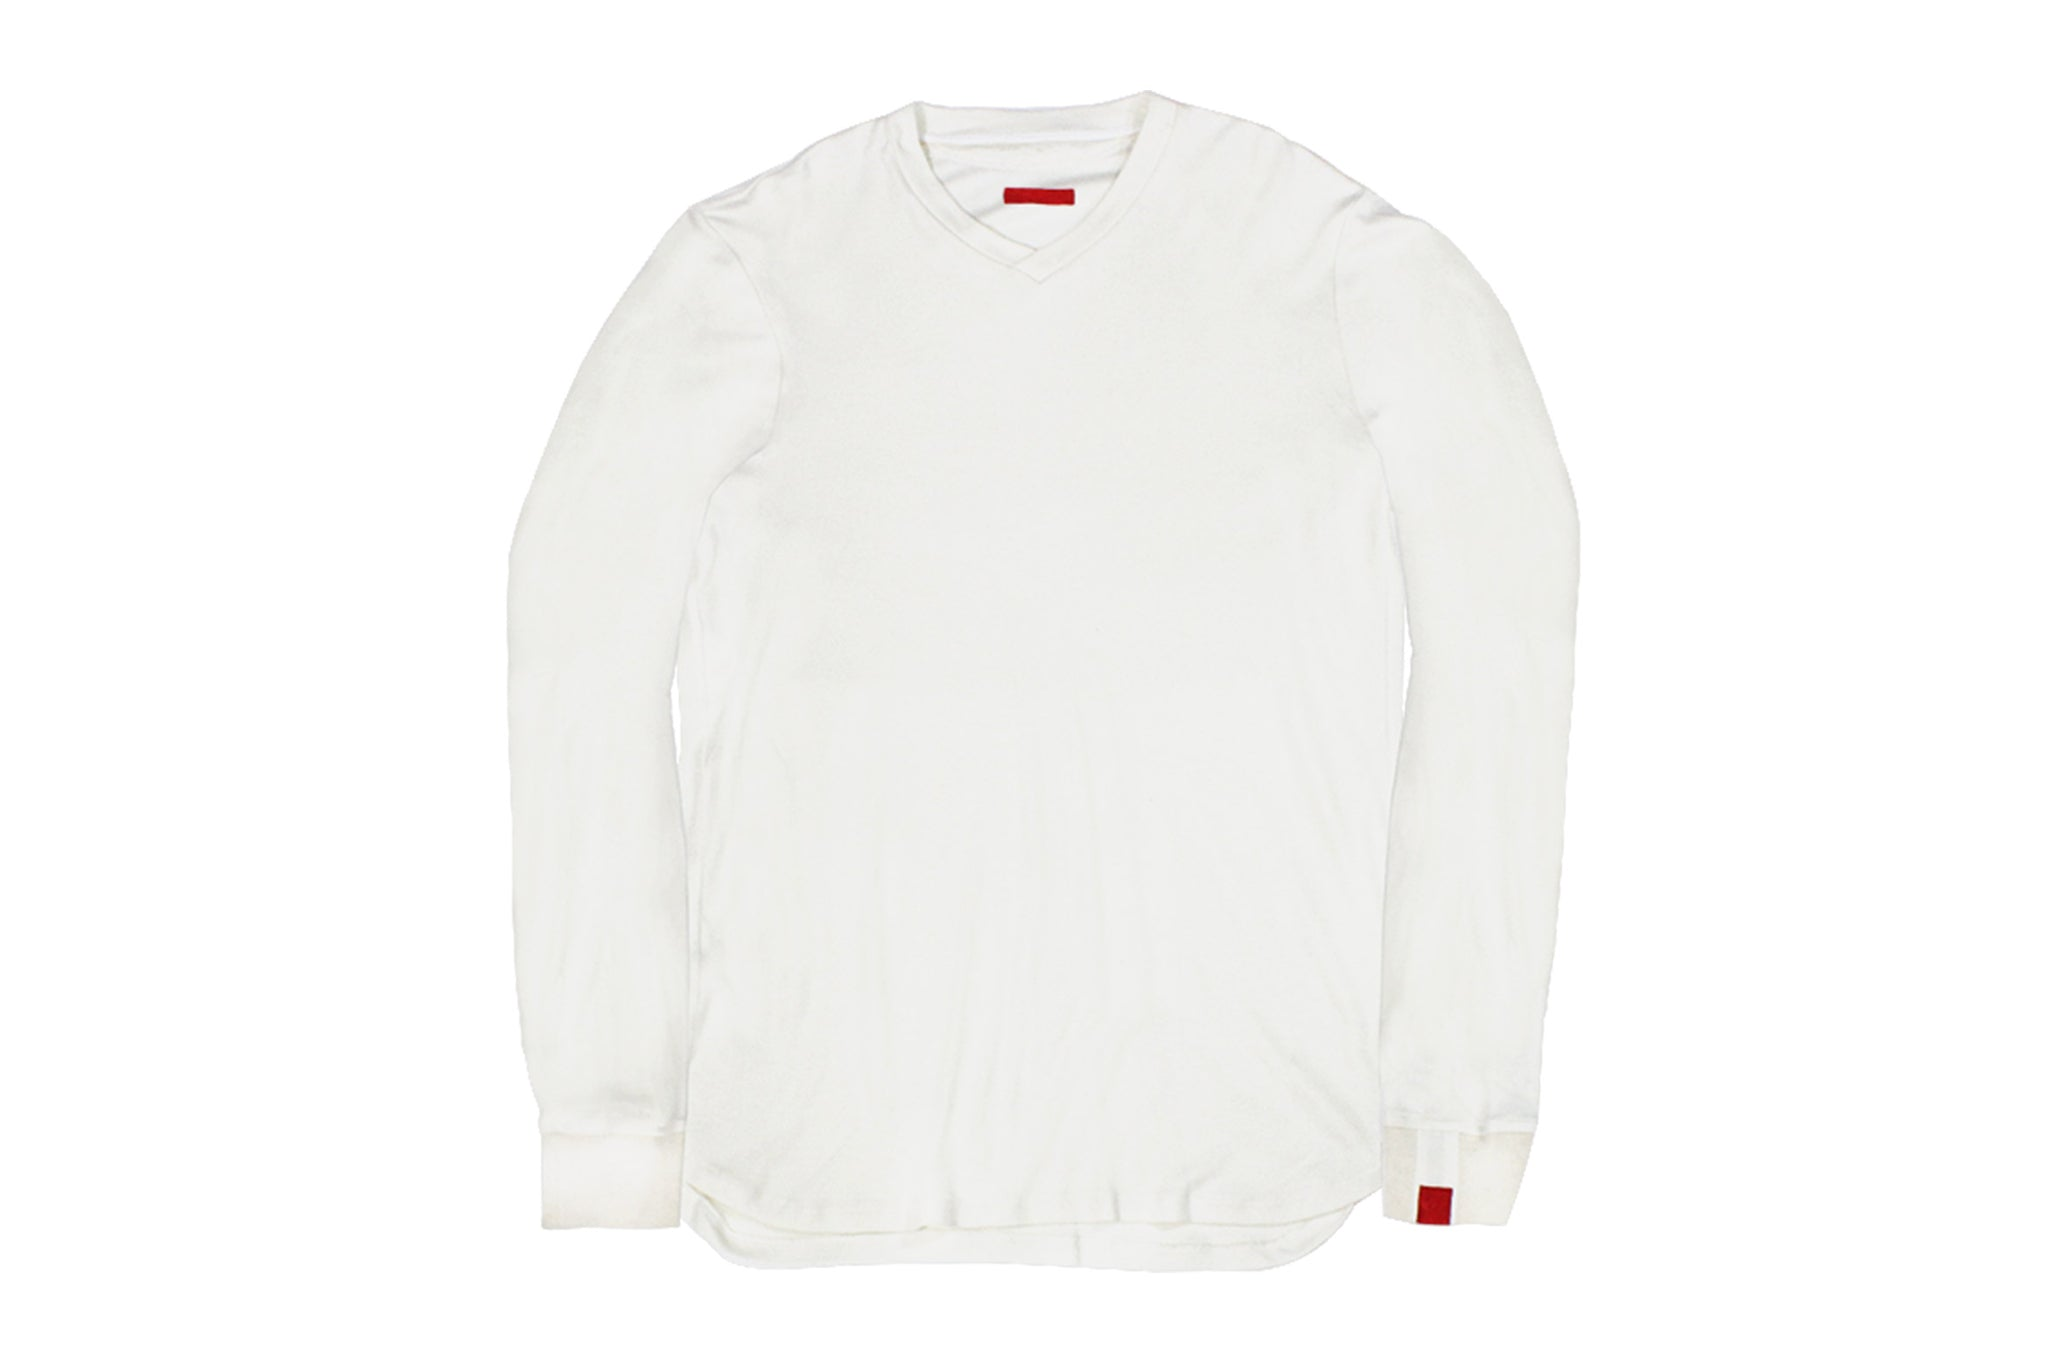 Warren Peace - Remy Long Sleeve T-Shirt in White Front - Designer Streetwear